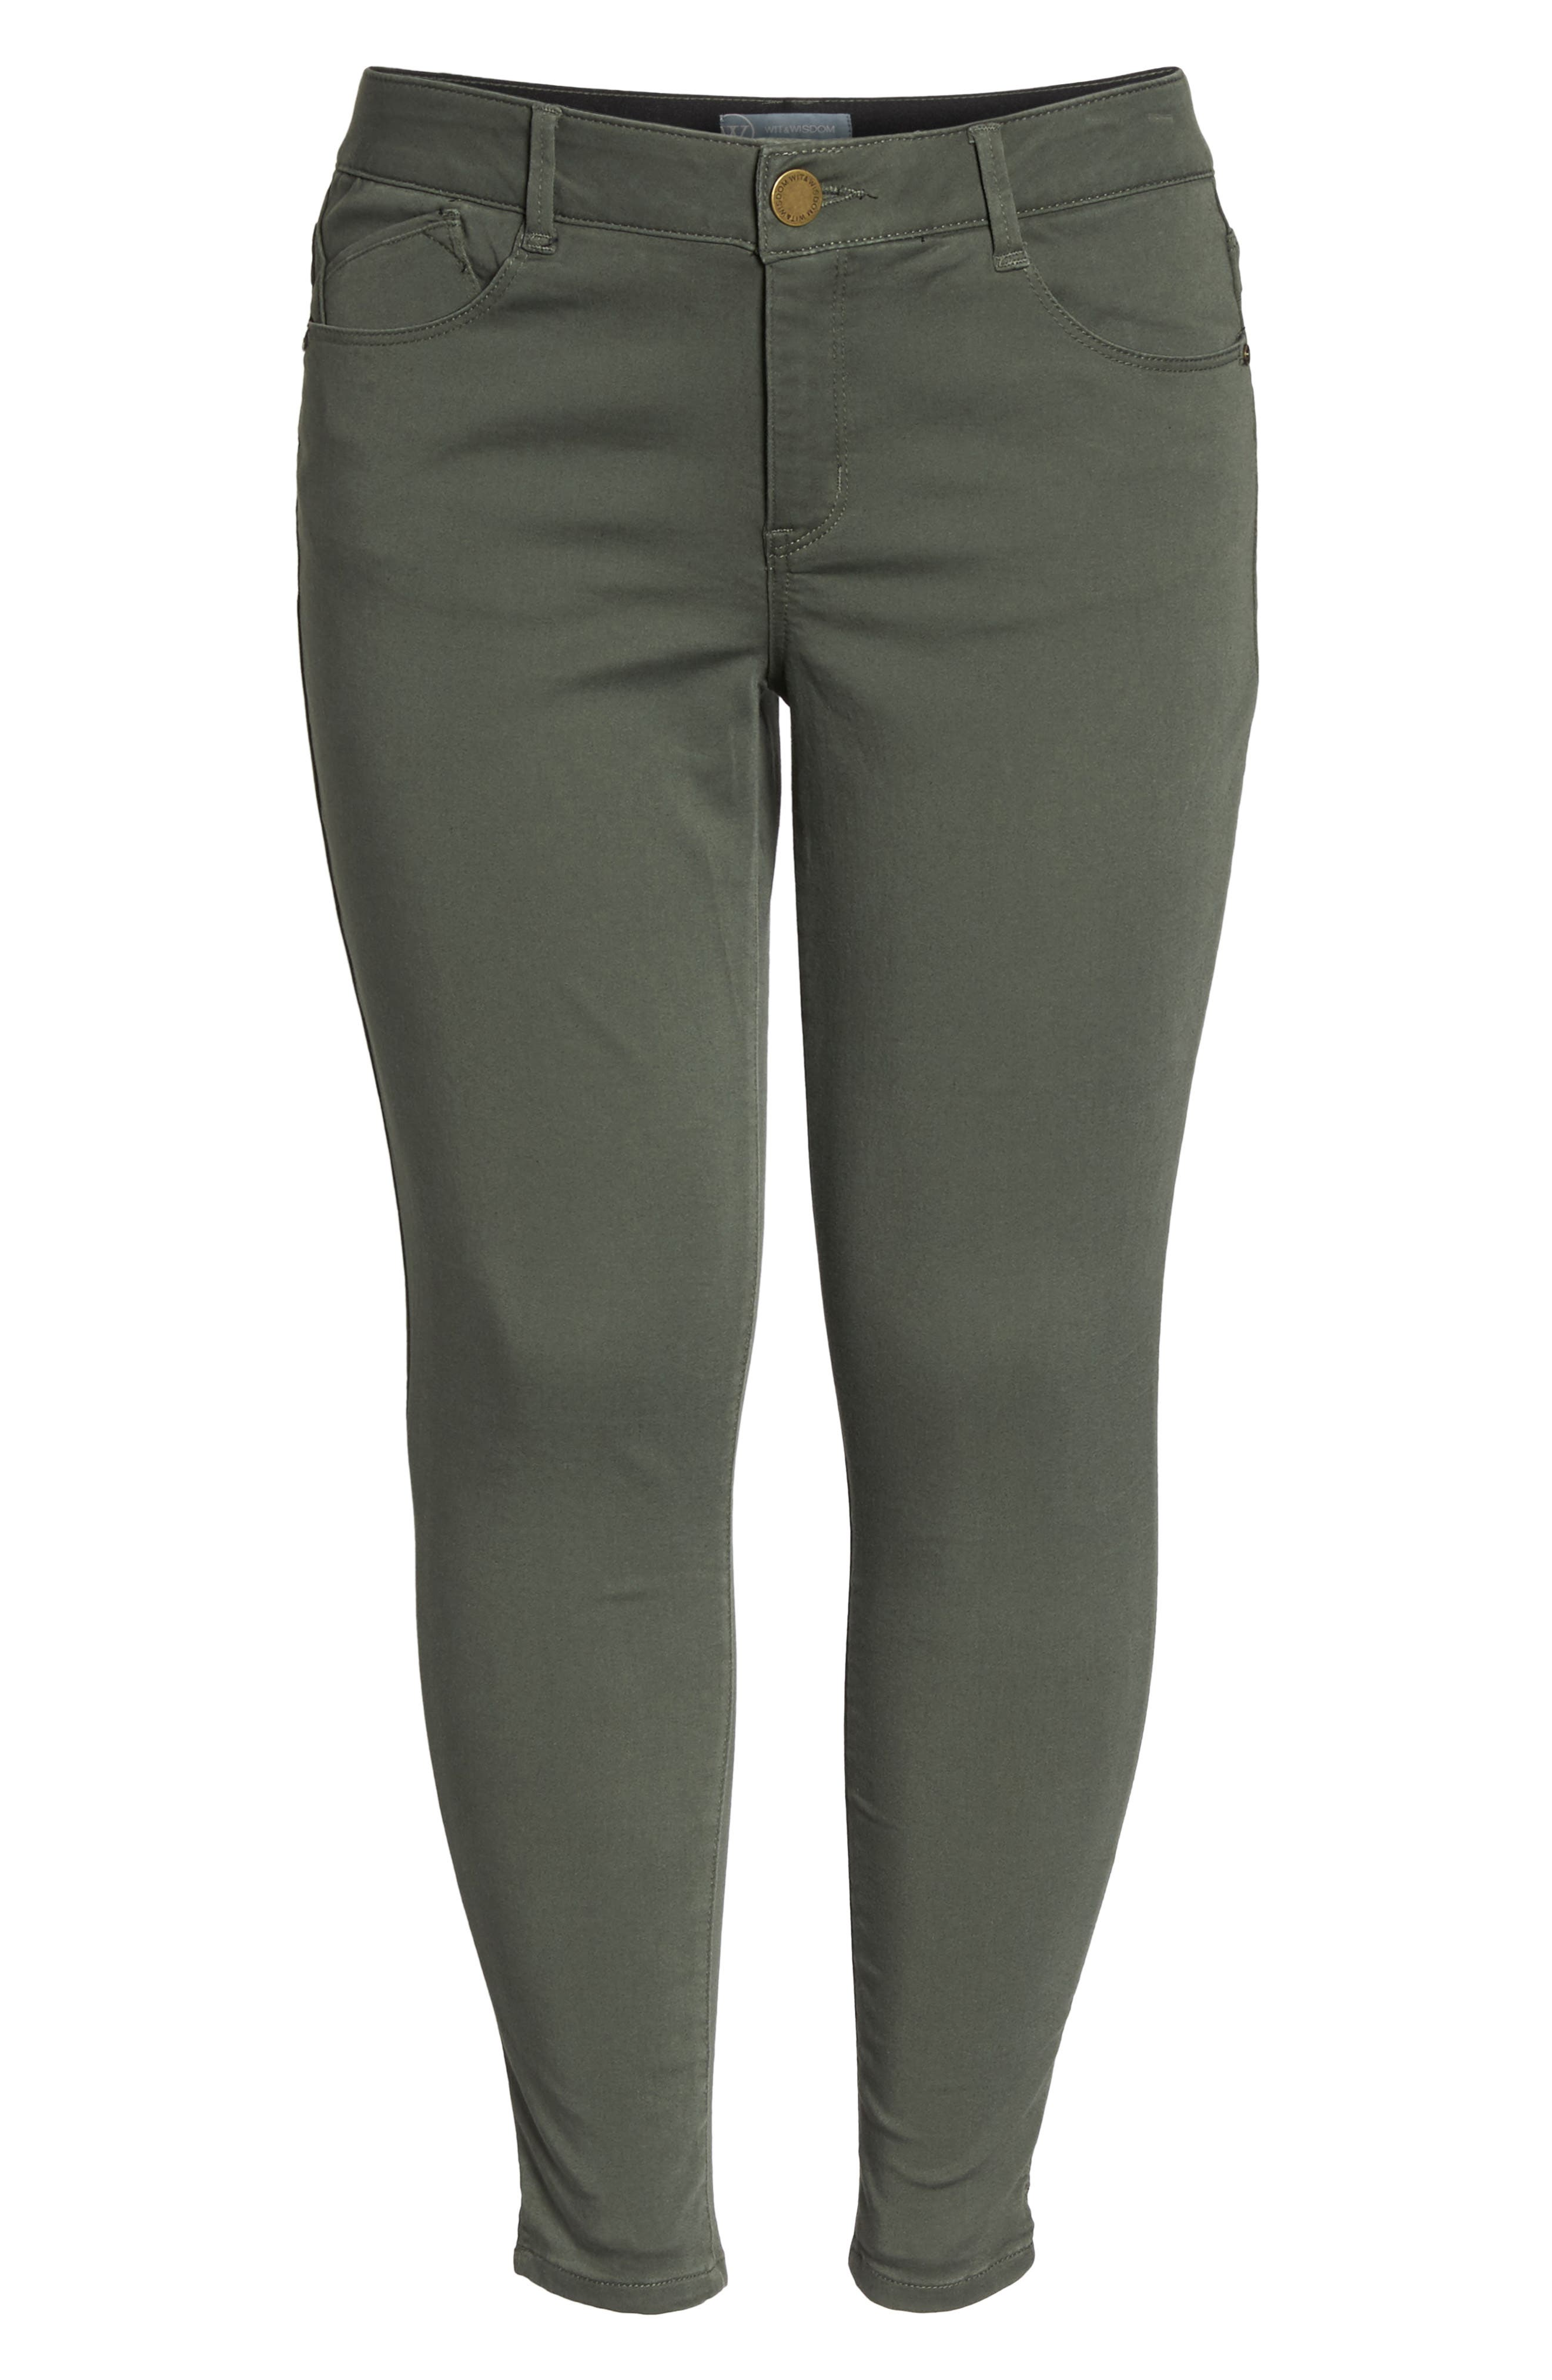 Ab-solution Ankle Pants,                             Alternate thumbnail 7, color,                             THYME